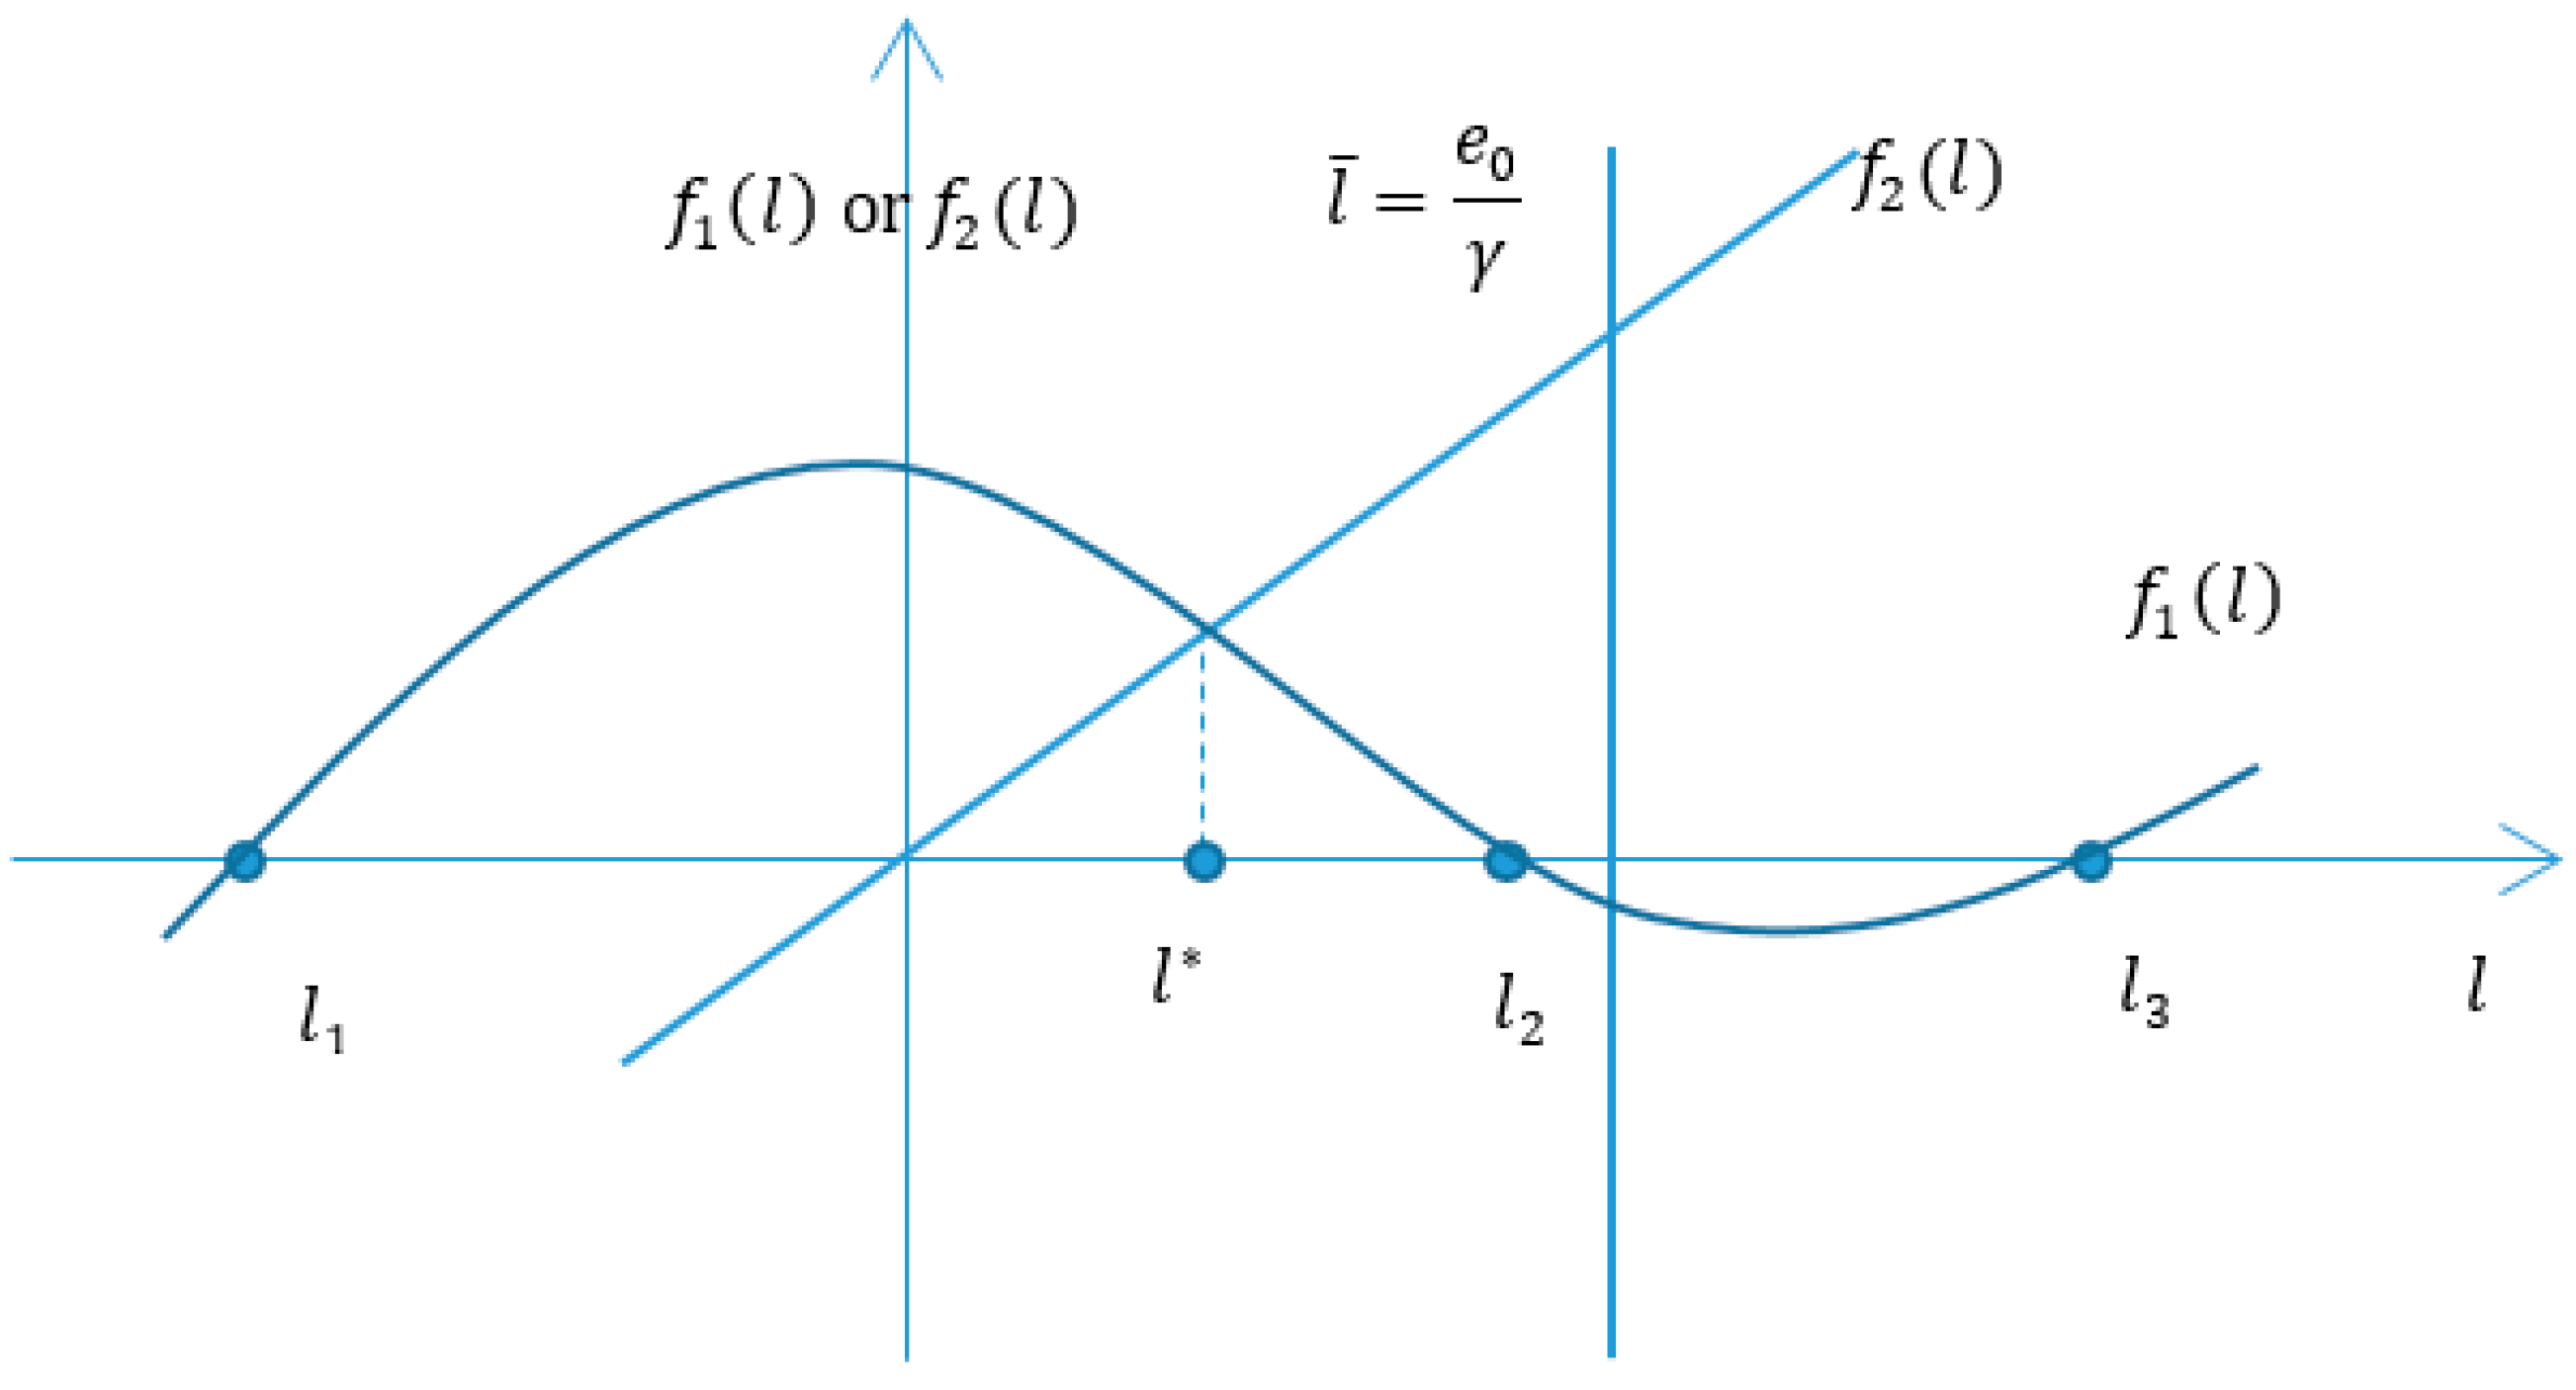 stackelberg leader follower models for strategic decision making engineering essay Solving a location problem of a stackelberg firm competing with cournot-nash firms  decision making problem all three papers modeled the market prices using.